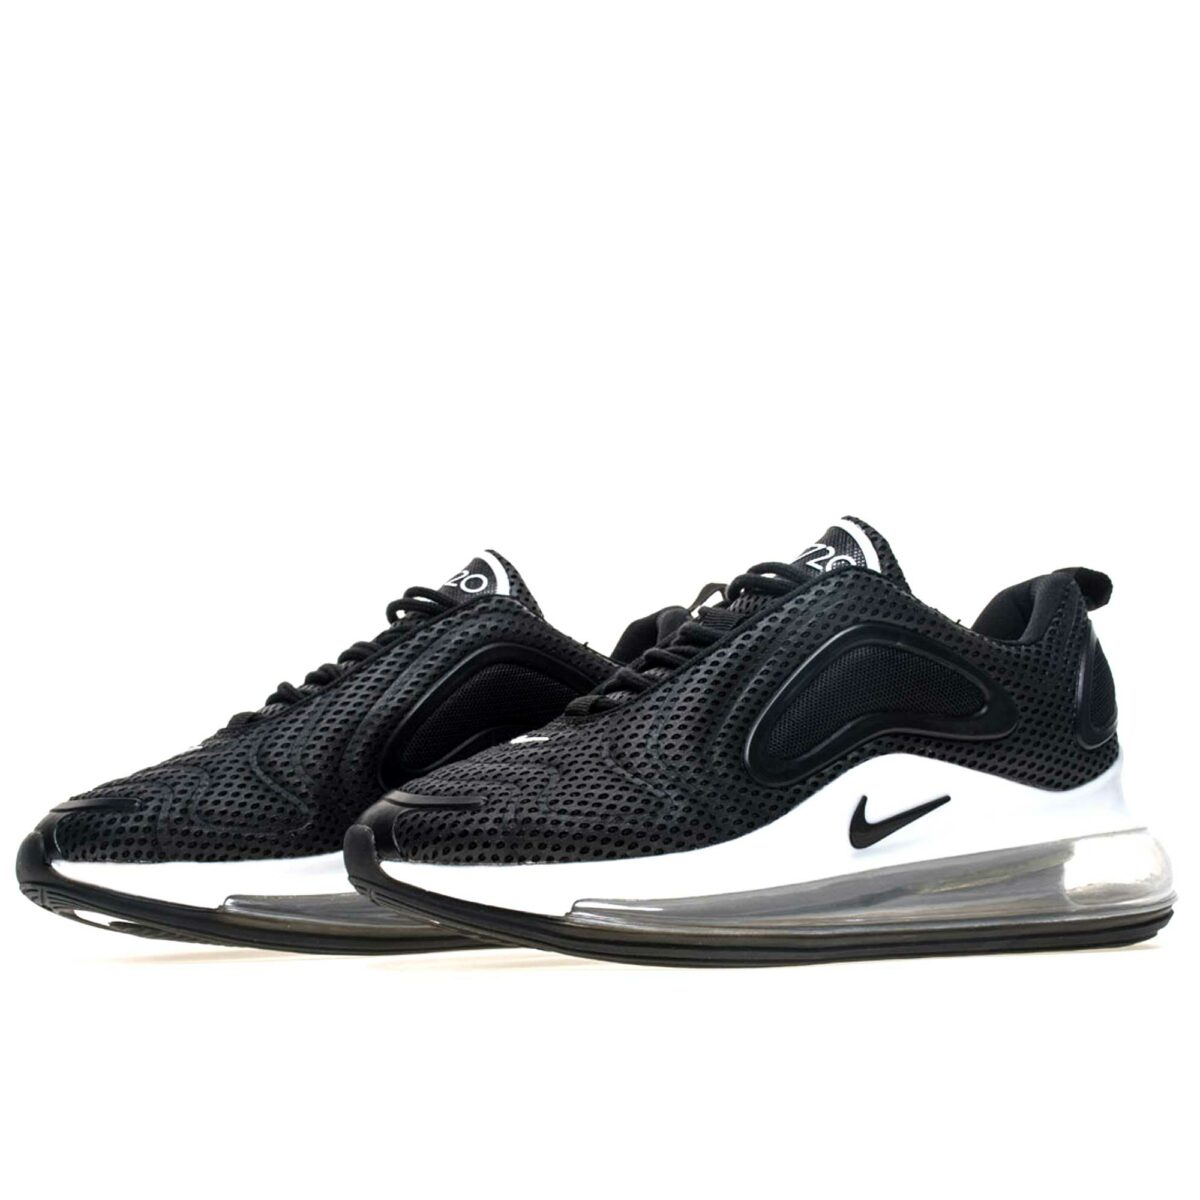 nike air max 720 black white AO2924_001 купить